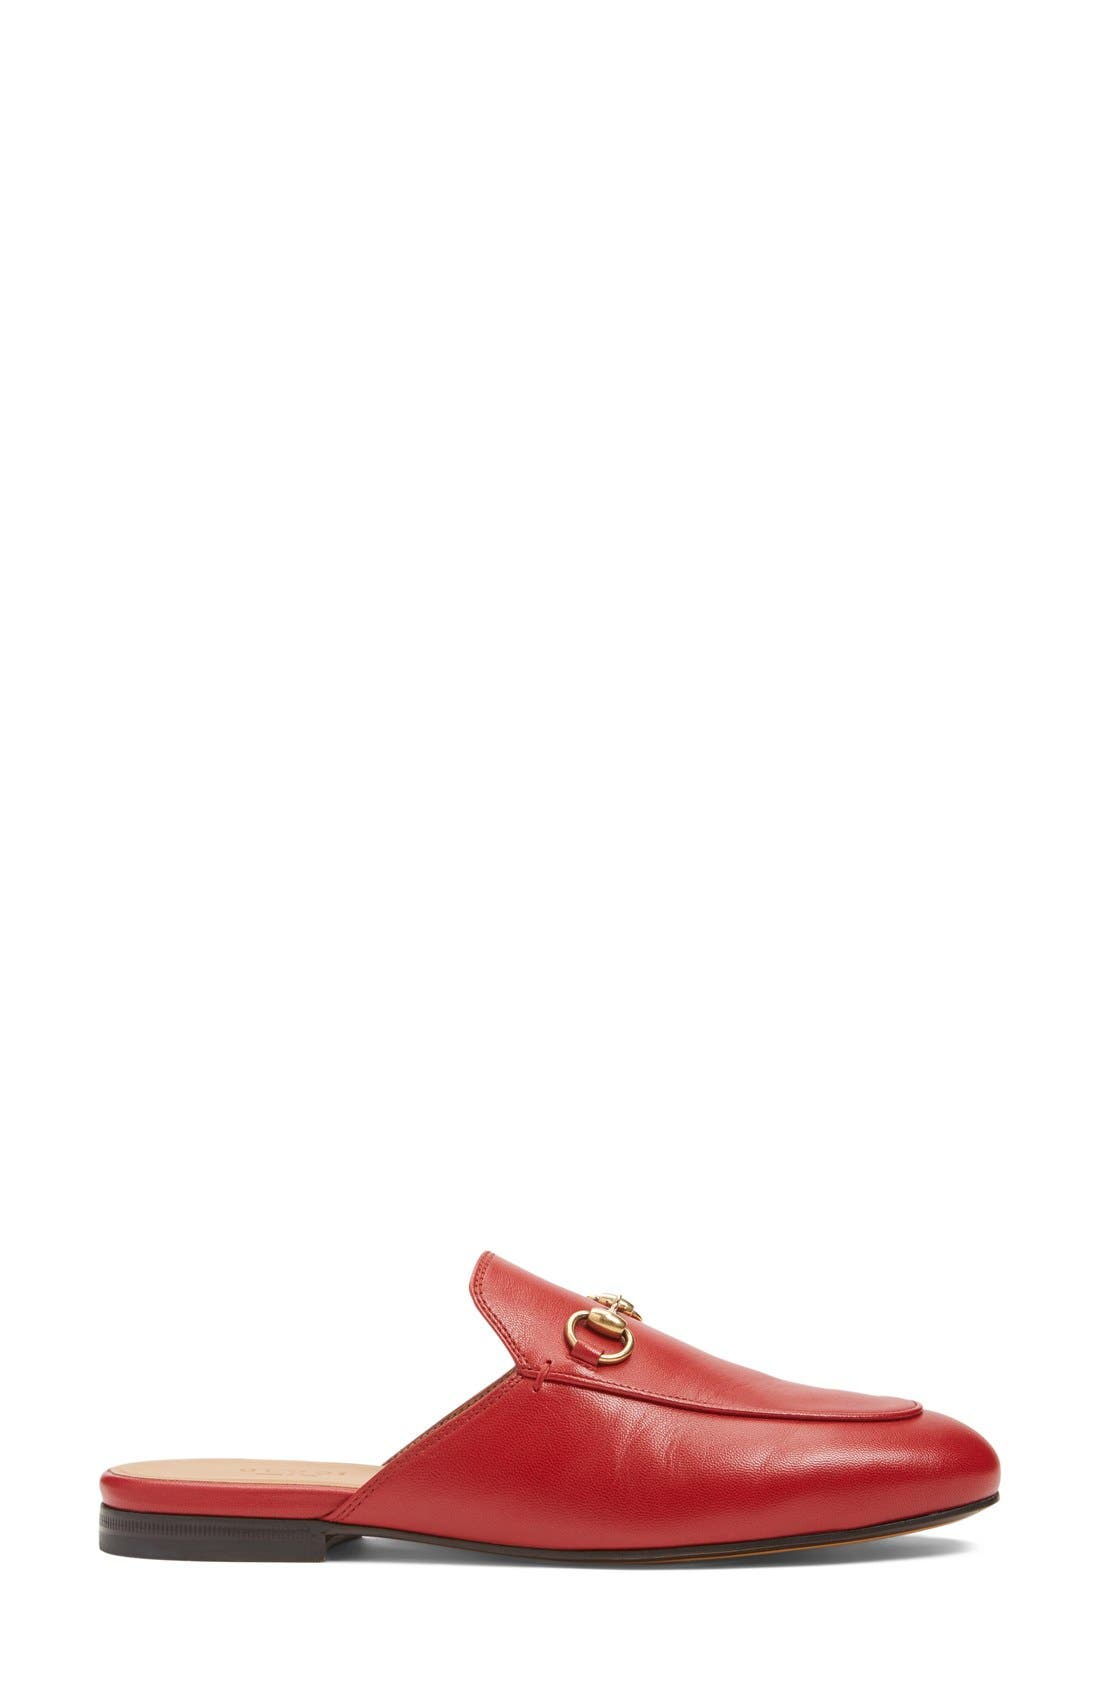 GUCCI, Princetown Loafer Mule, Alternate thumbnail 3, color, RED LEATHER